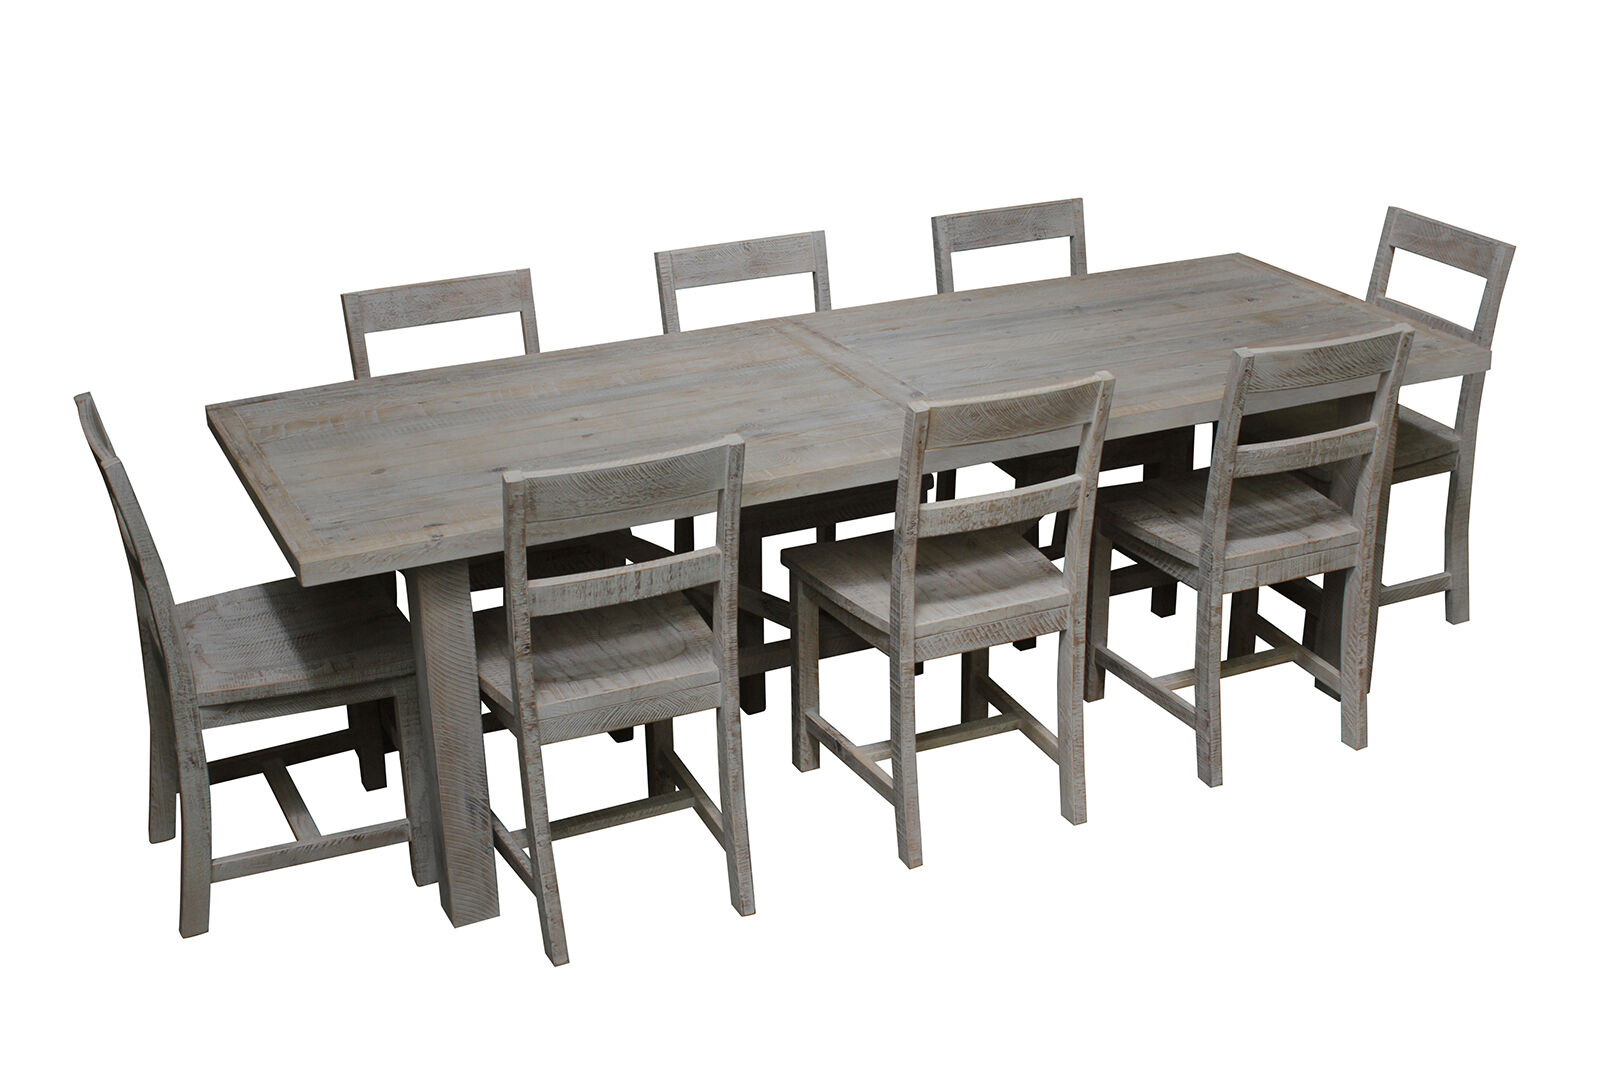 industrial dining table and chairs chair cover rentals brandon mb white 8 seater rustic